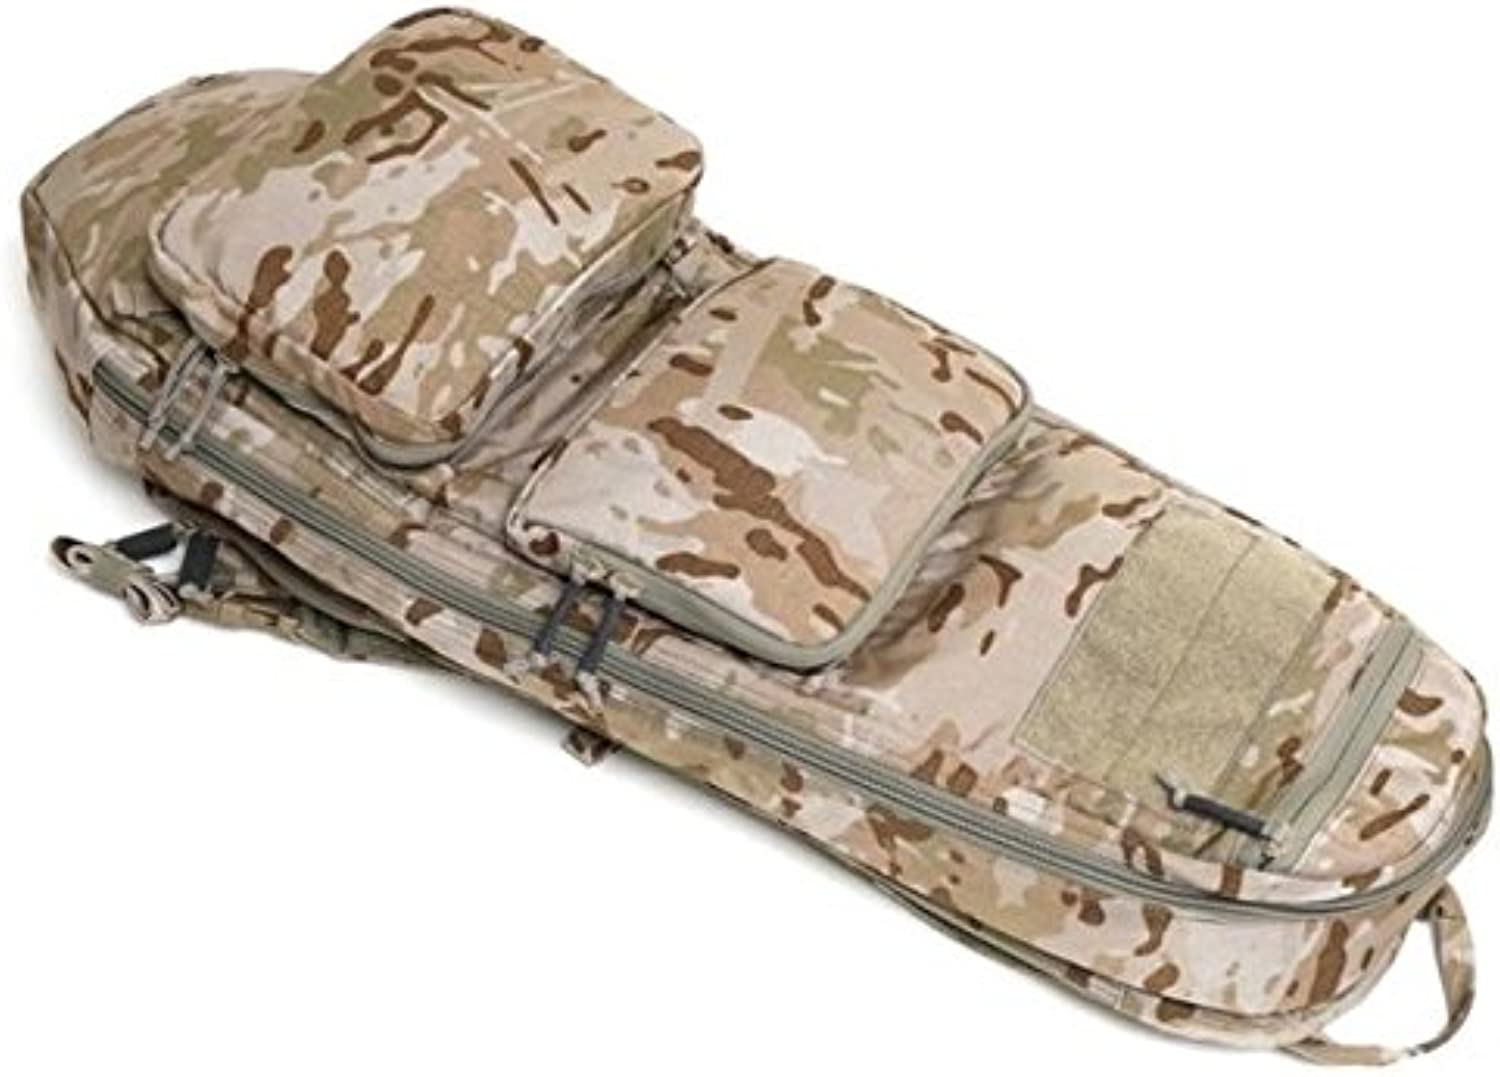 LBX TACTICAL LBX4003Arid Full Length Rifle Bag, Arid, One Size